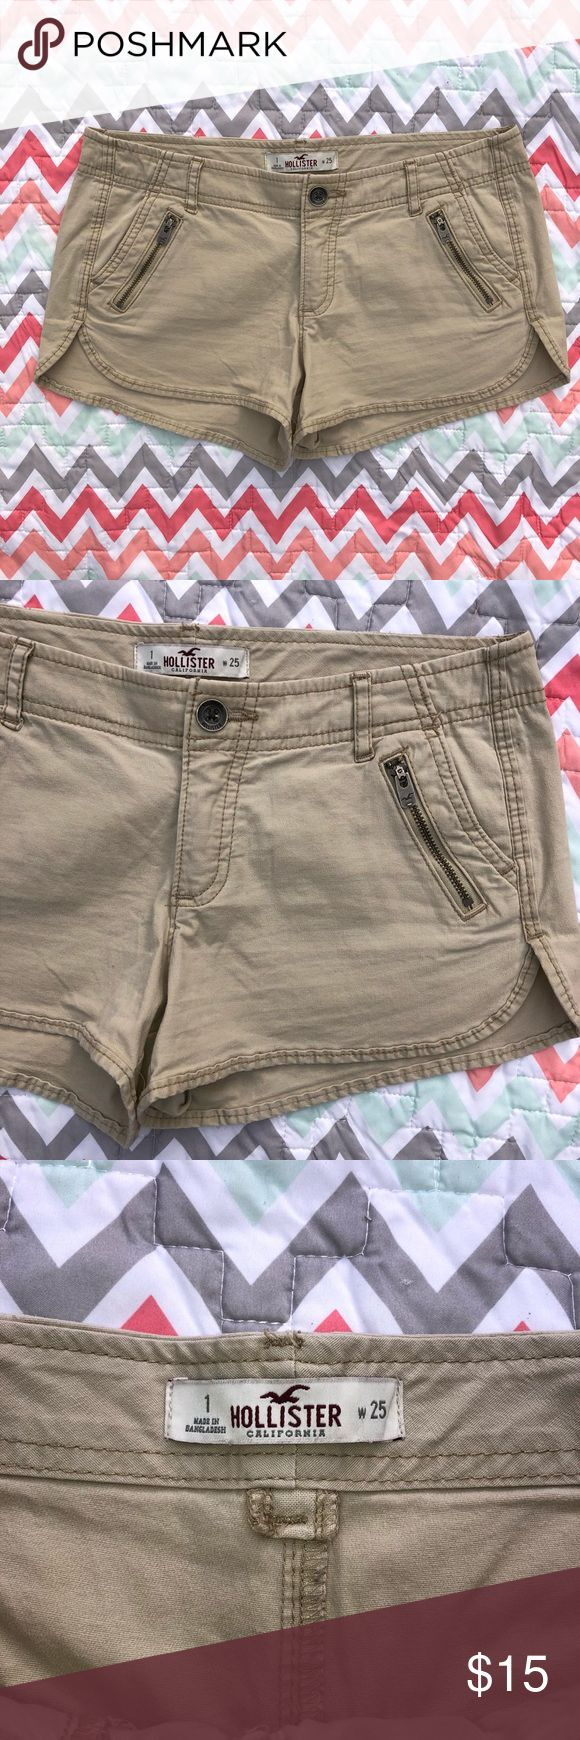 1/25 Hollister Zip Pocket Curved Hem Khaki Shorts Details: Tan almost brown khaki like cargo shorts. Very very light weight material. Front zipper pockets and button zip fly front. Curved Hem leg design.   Brand: Hollister  Size: 1 (25) (Juniors) -would also fit Women's just please know your size when converting.  Condition: NWOT new without tag   @CksOverload Hollister Shorts